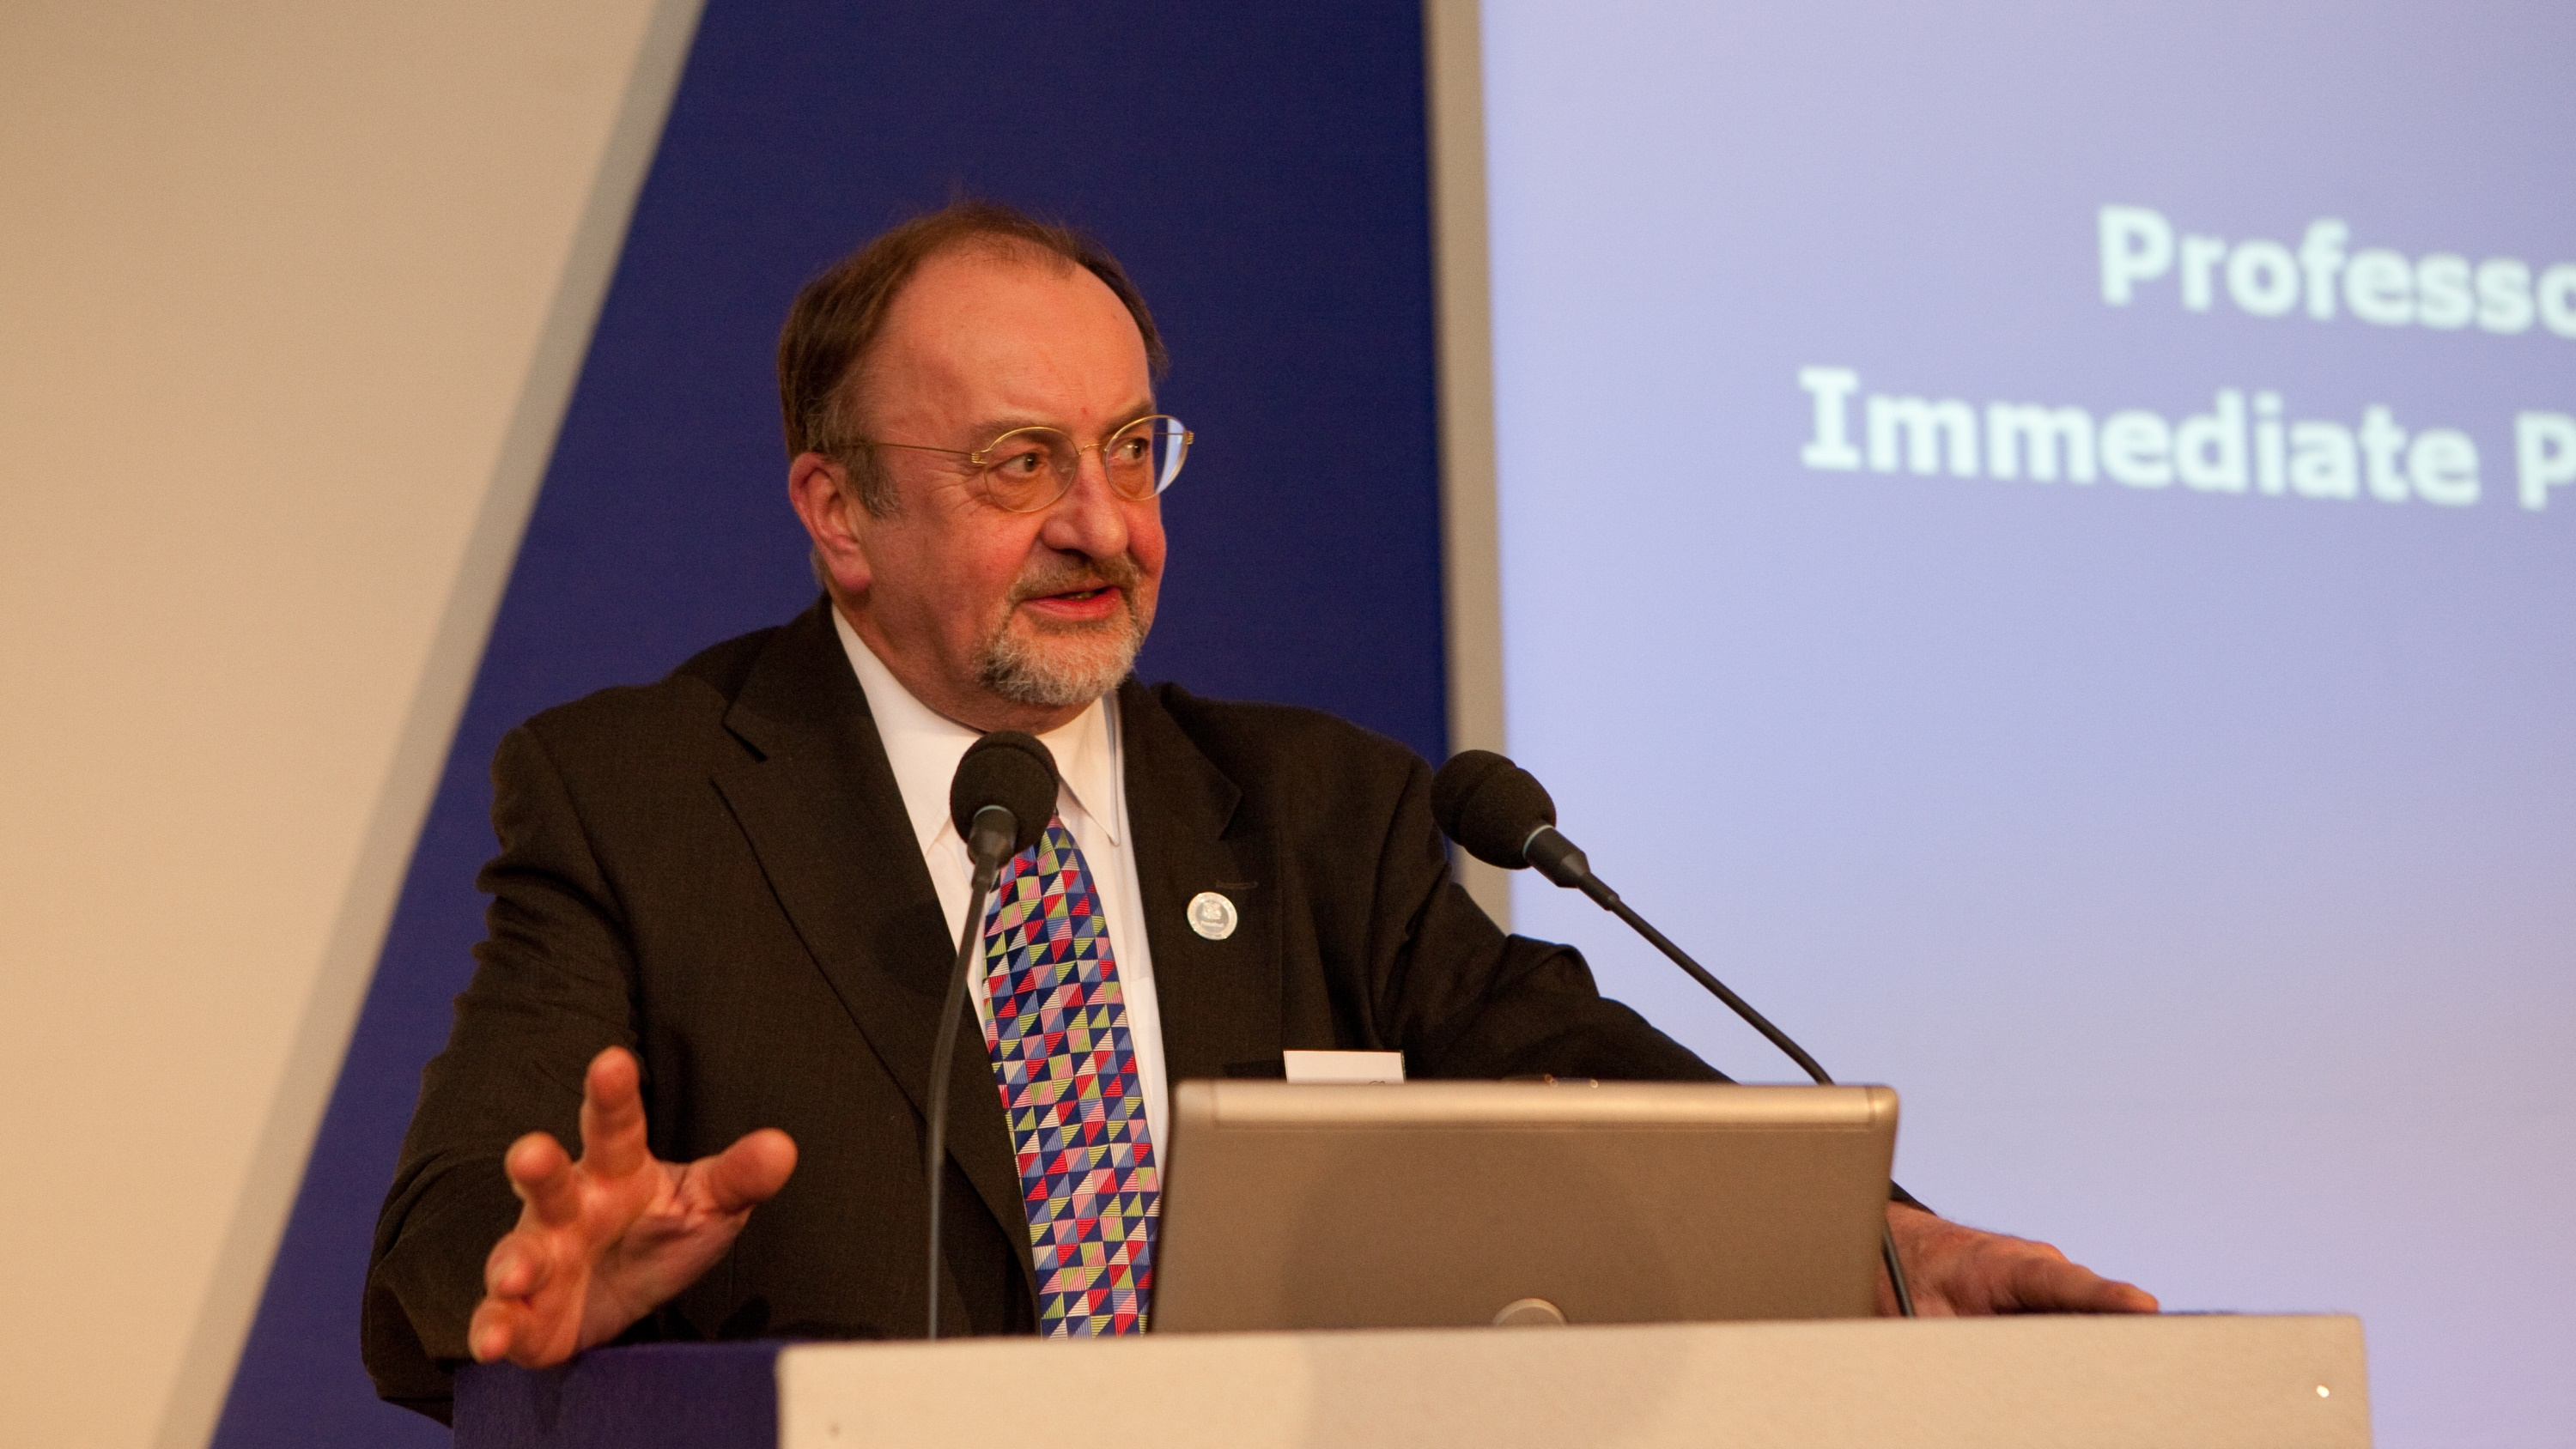 Professor Paul Jowitt at CEEQUAL Outstanding Achievement Awards 2011